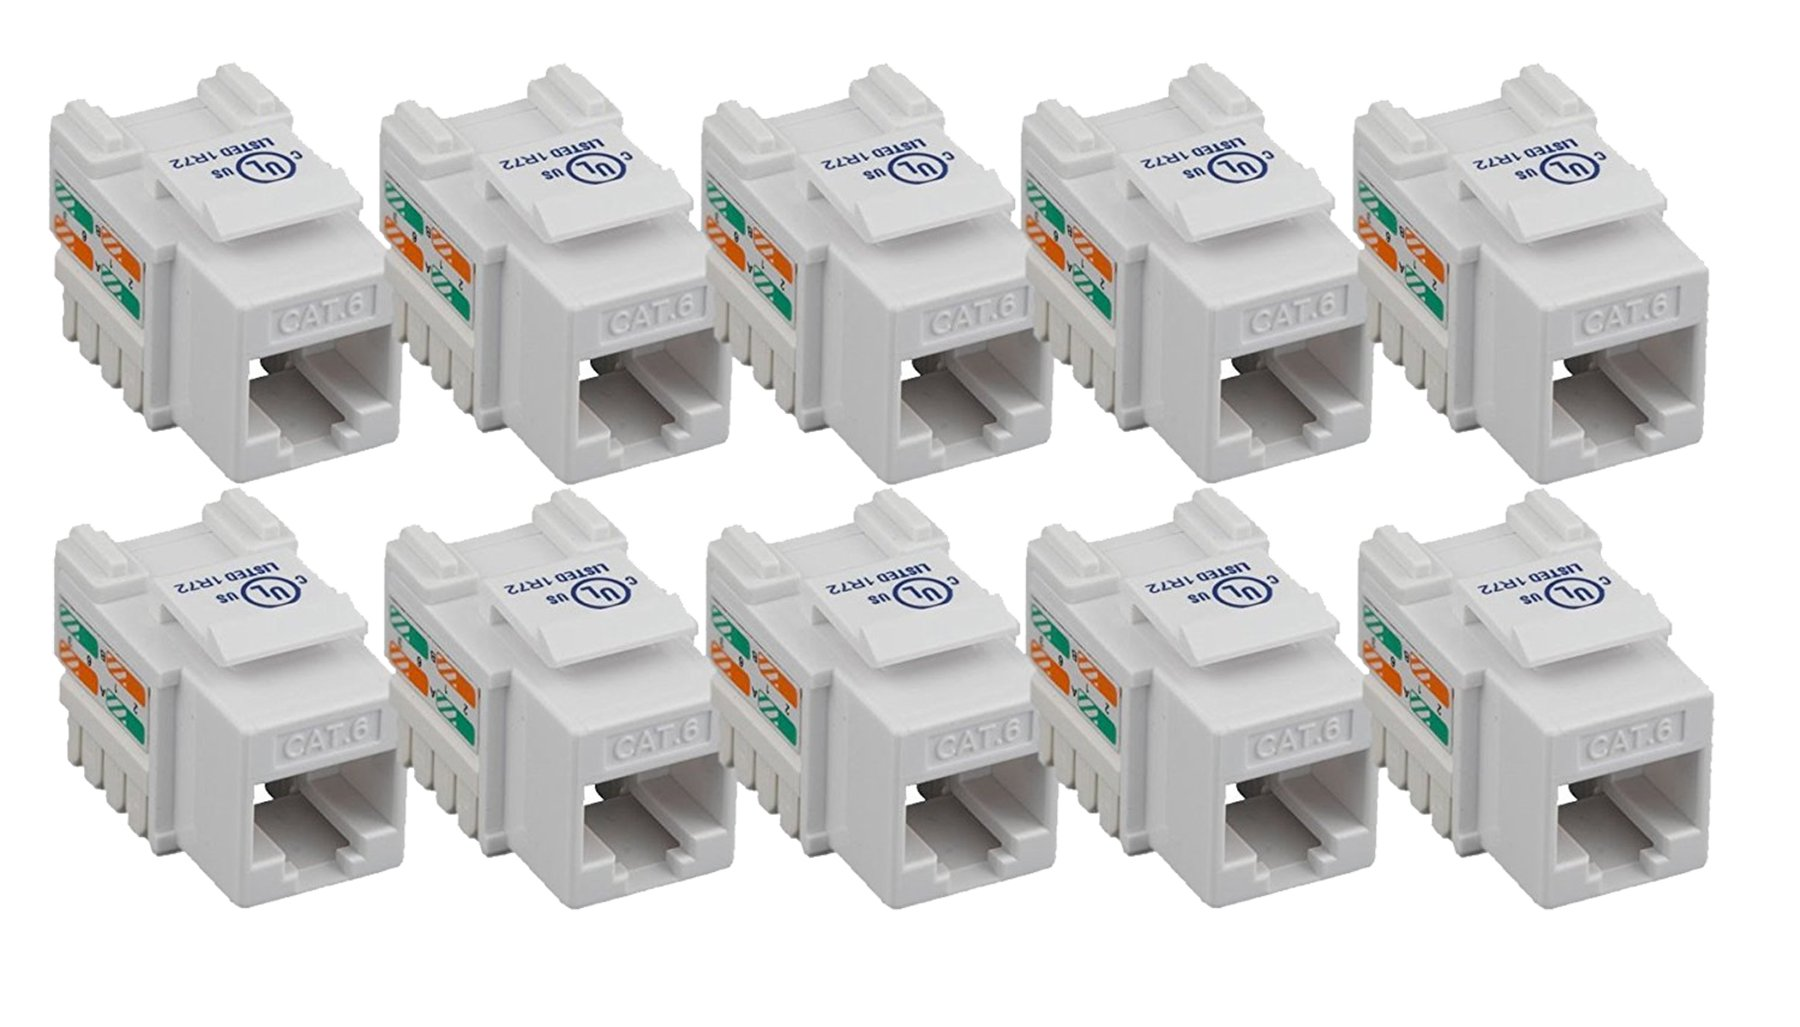 iMBAPrice (10-Pack) Cat6 RJ45 Punch-Down Keystone Jack in (White)